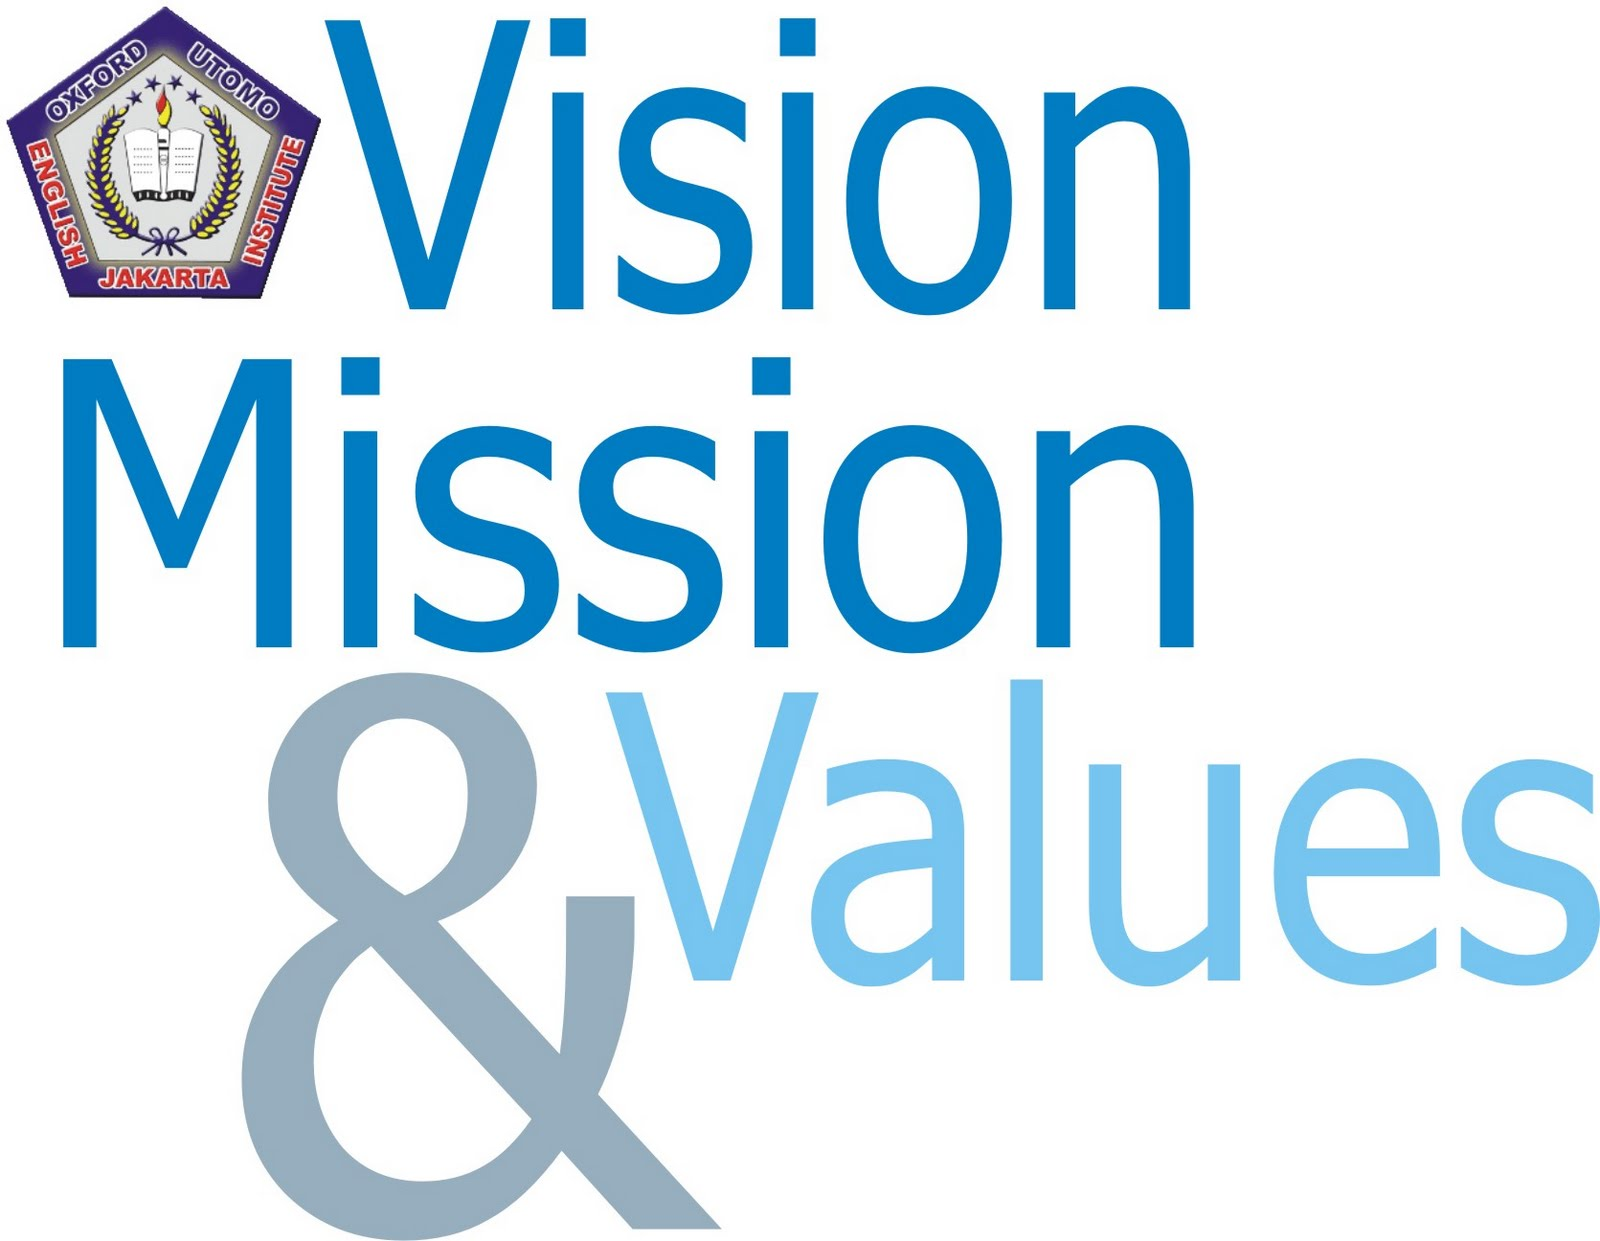 visions and missions Vision and mission our vision to become the premier department of state in the nation by providing the highest standards of a ccurate, c ourteous and t imely service.